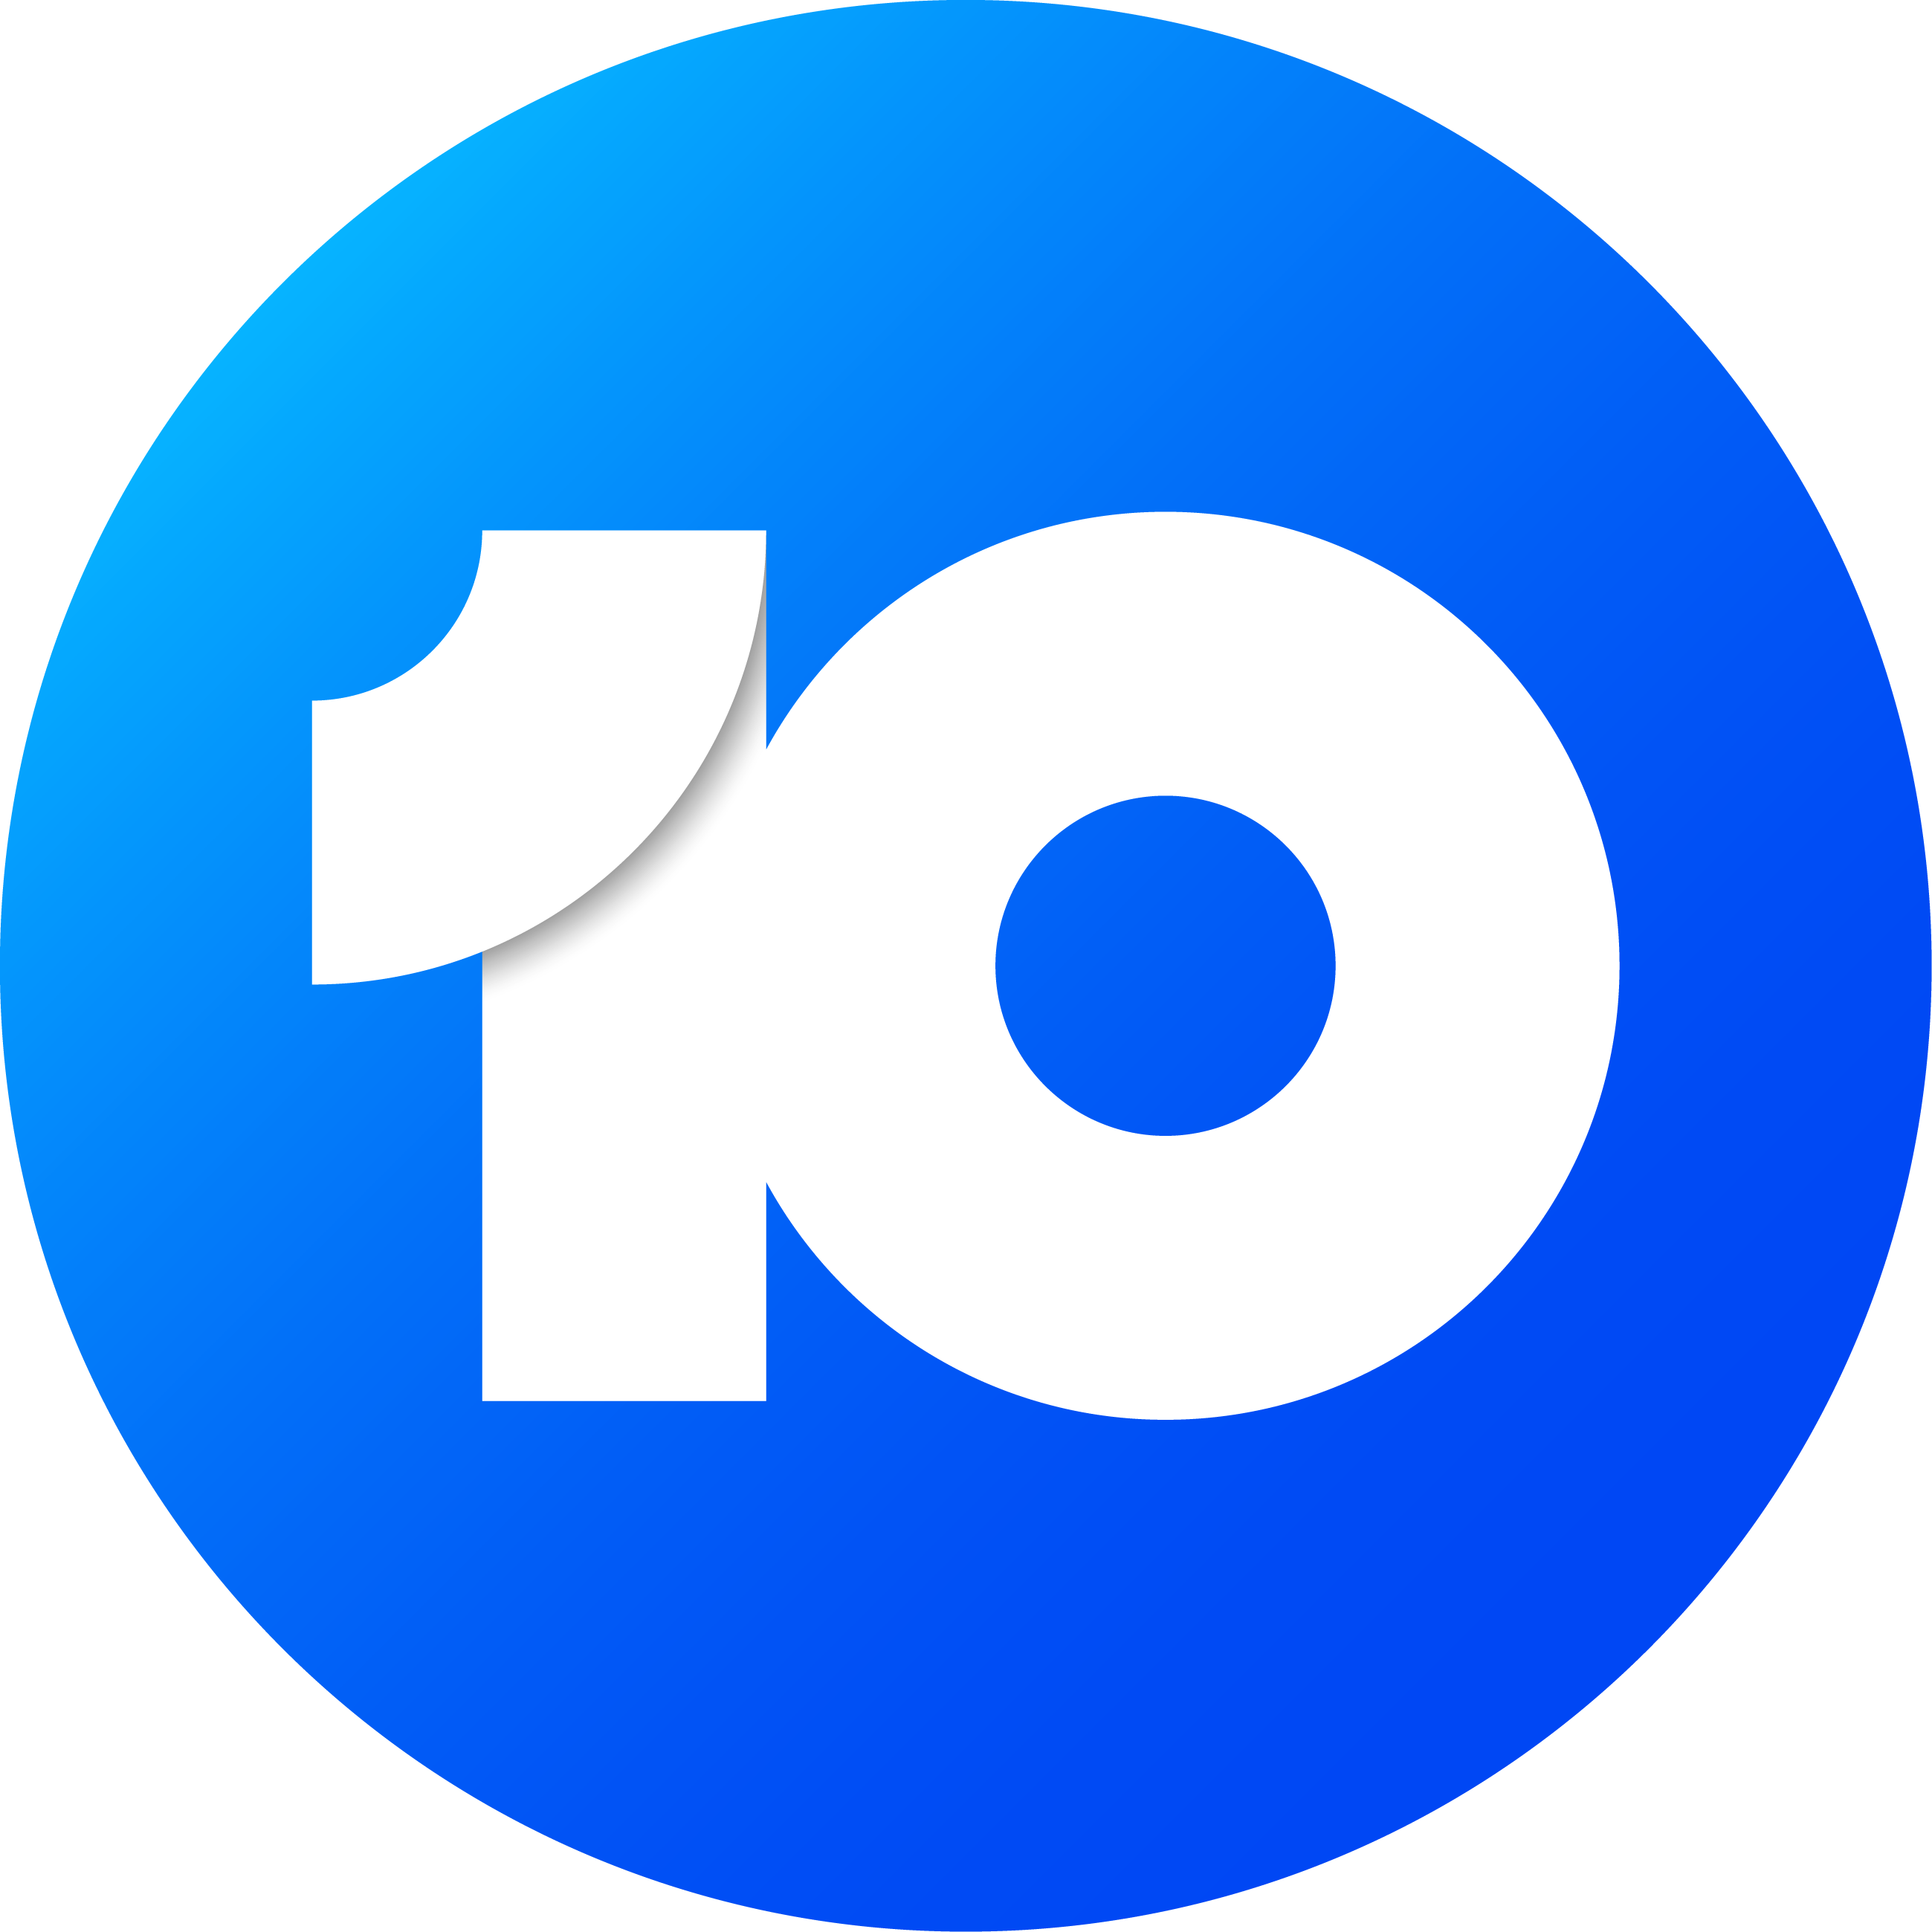 Sponsor logo - Channel 10